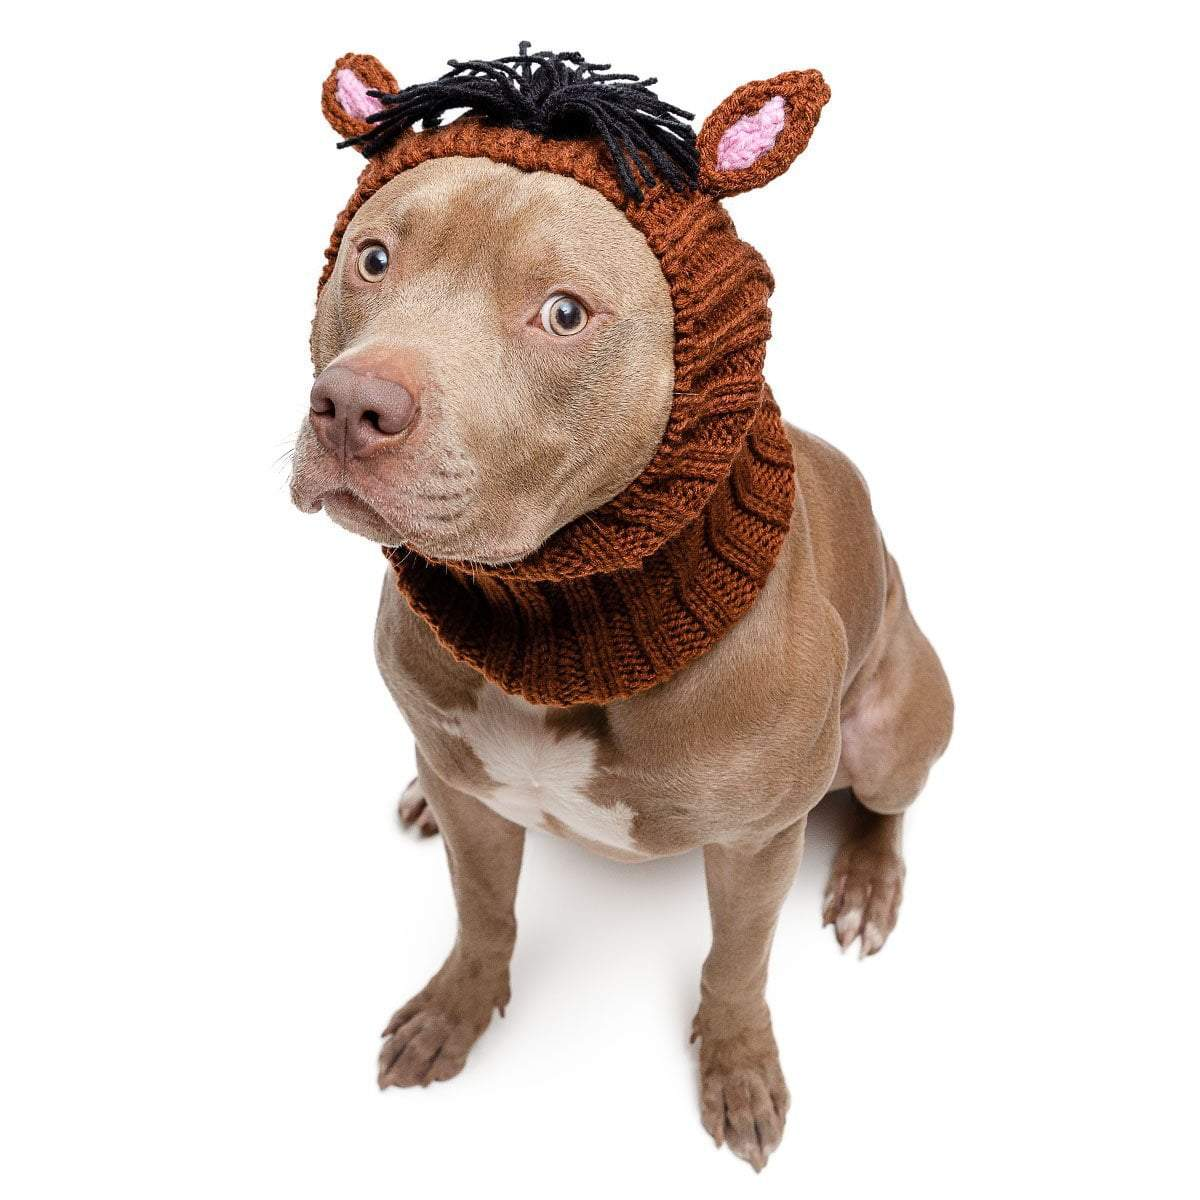 Horse Dog Snood Knit Dog Costume By Zoo Snoods